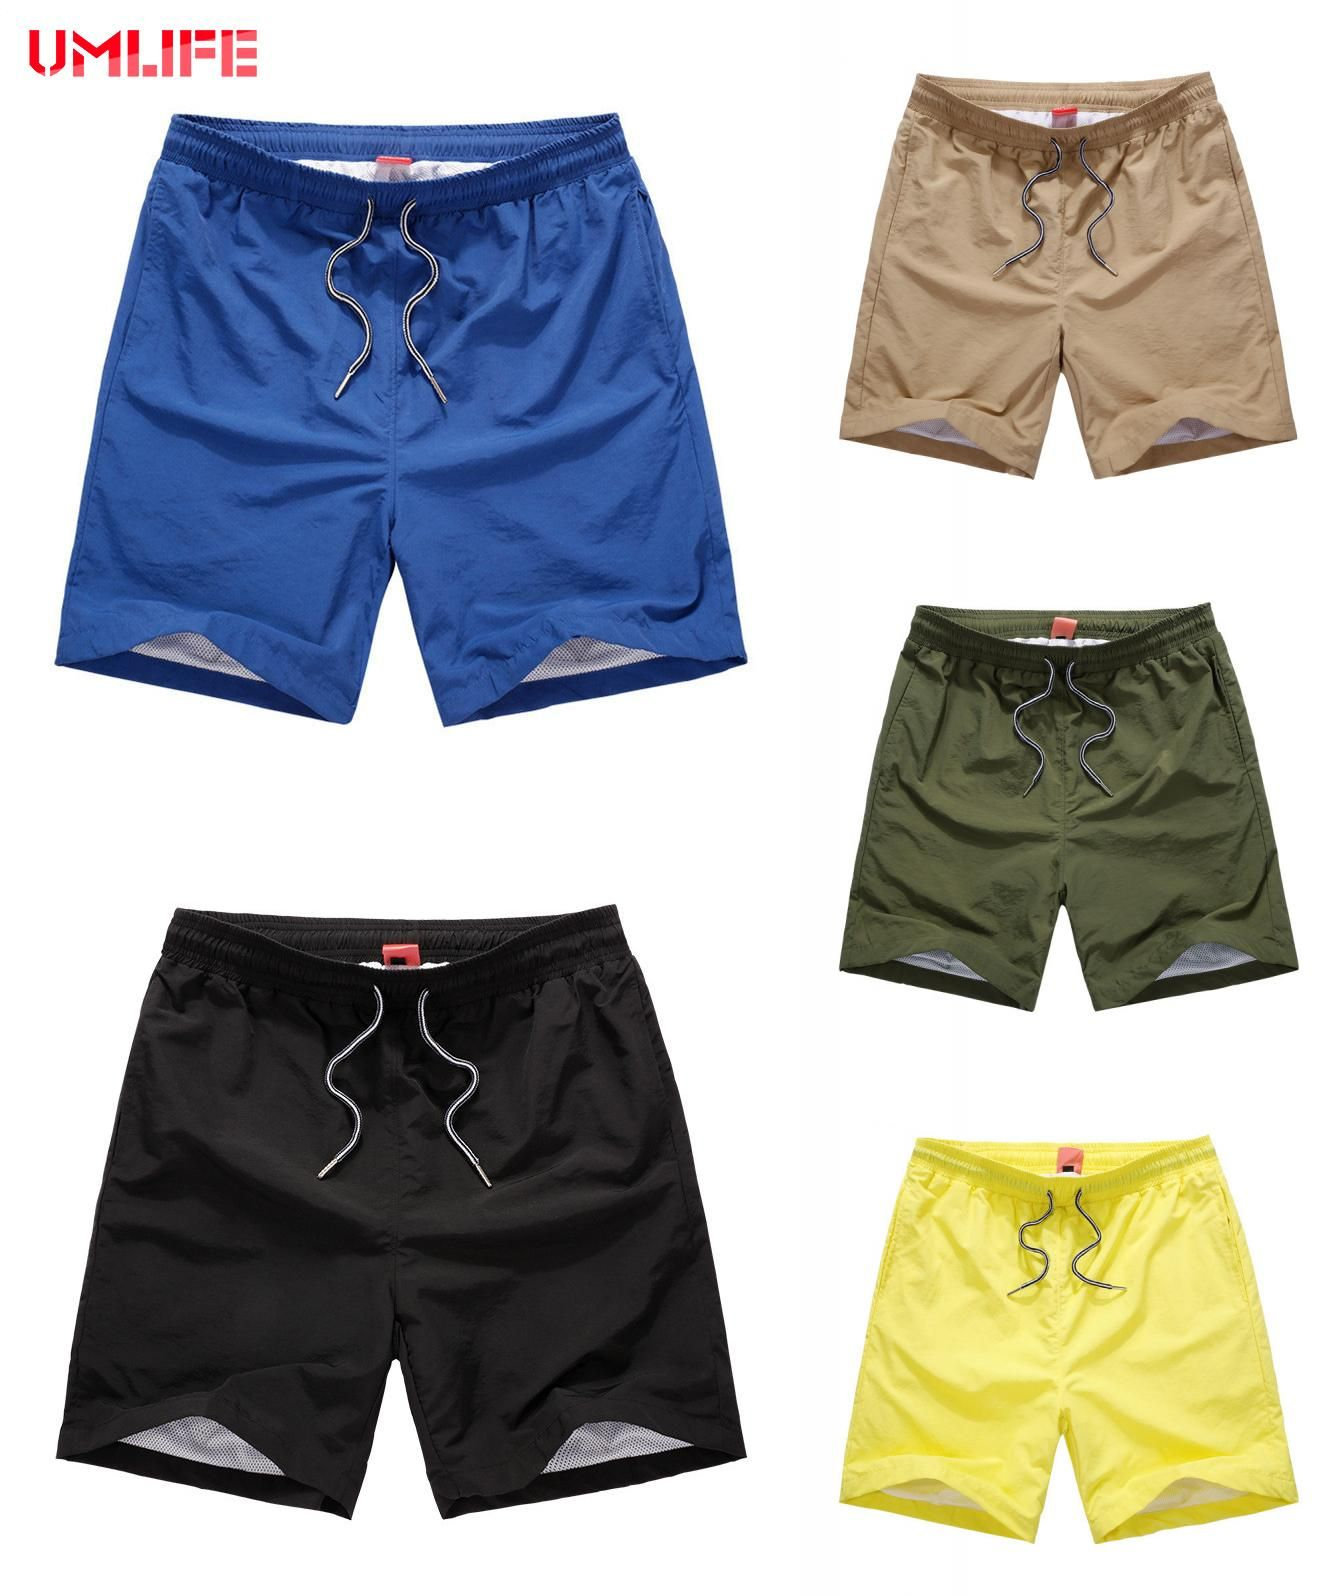 118fdcee2e46d5 [Visit to Buy] 2017 Summer Beach Shorts Men Quick Drying Solid Color Board  Shorts Mens Swimming Shorts Pocket Male Loose Boardshorts Plus Size # ...